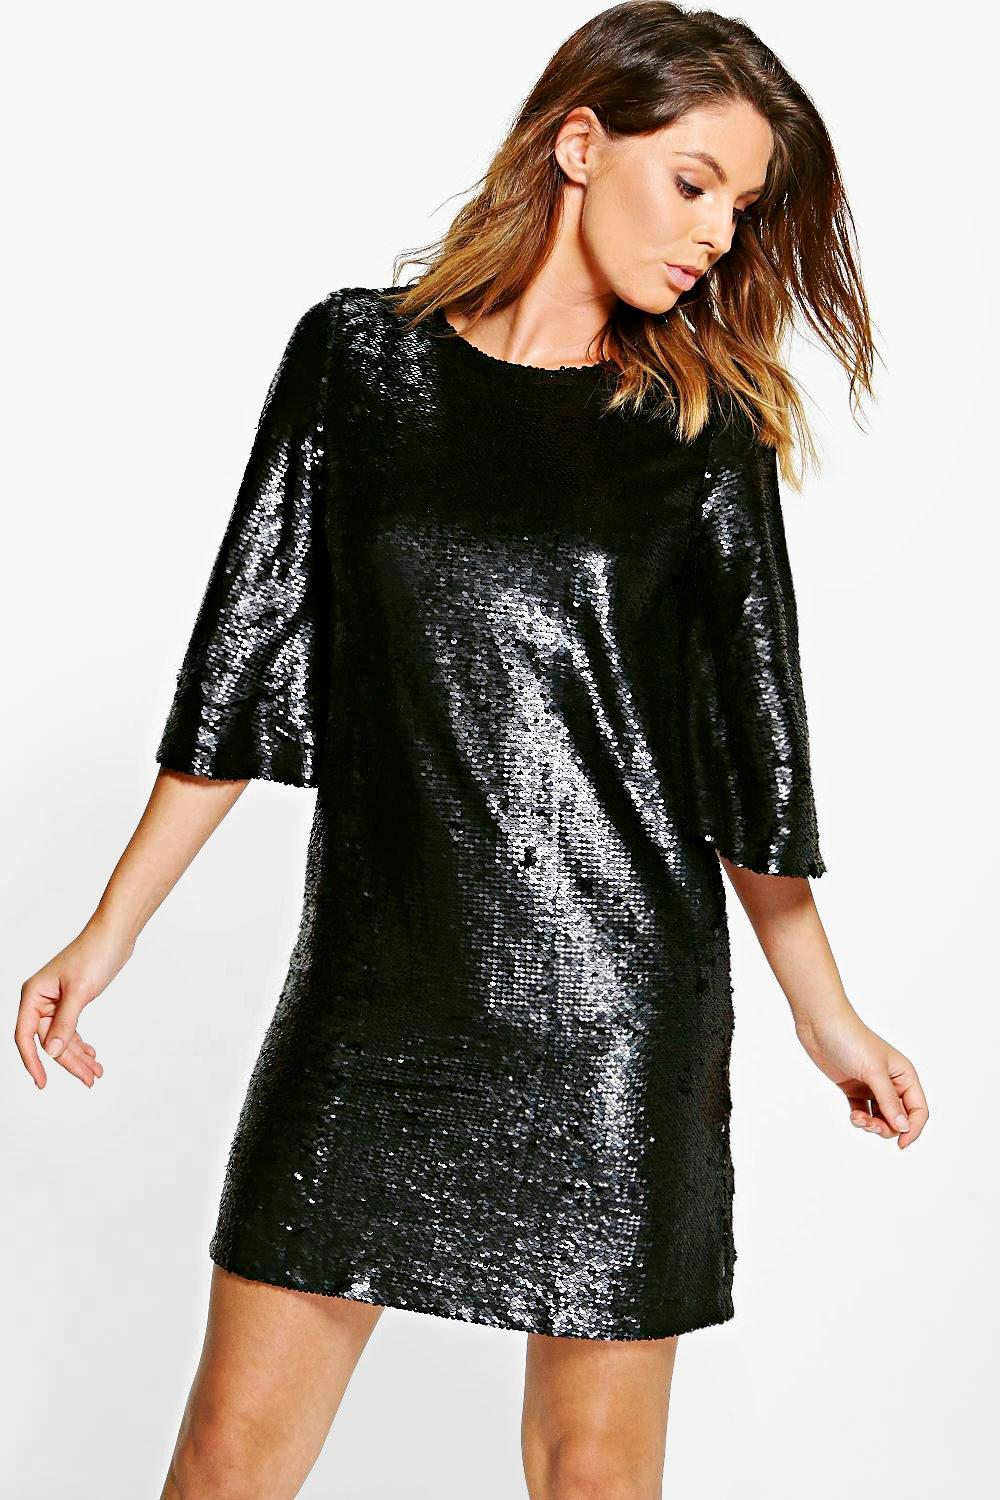 e24be1d469e42 Lyst - Boohoo Boutique Leila All Over Sequin Shift Dress in Black